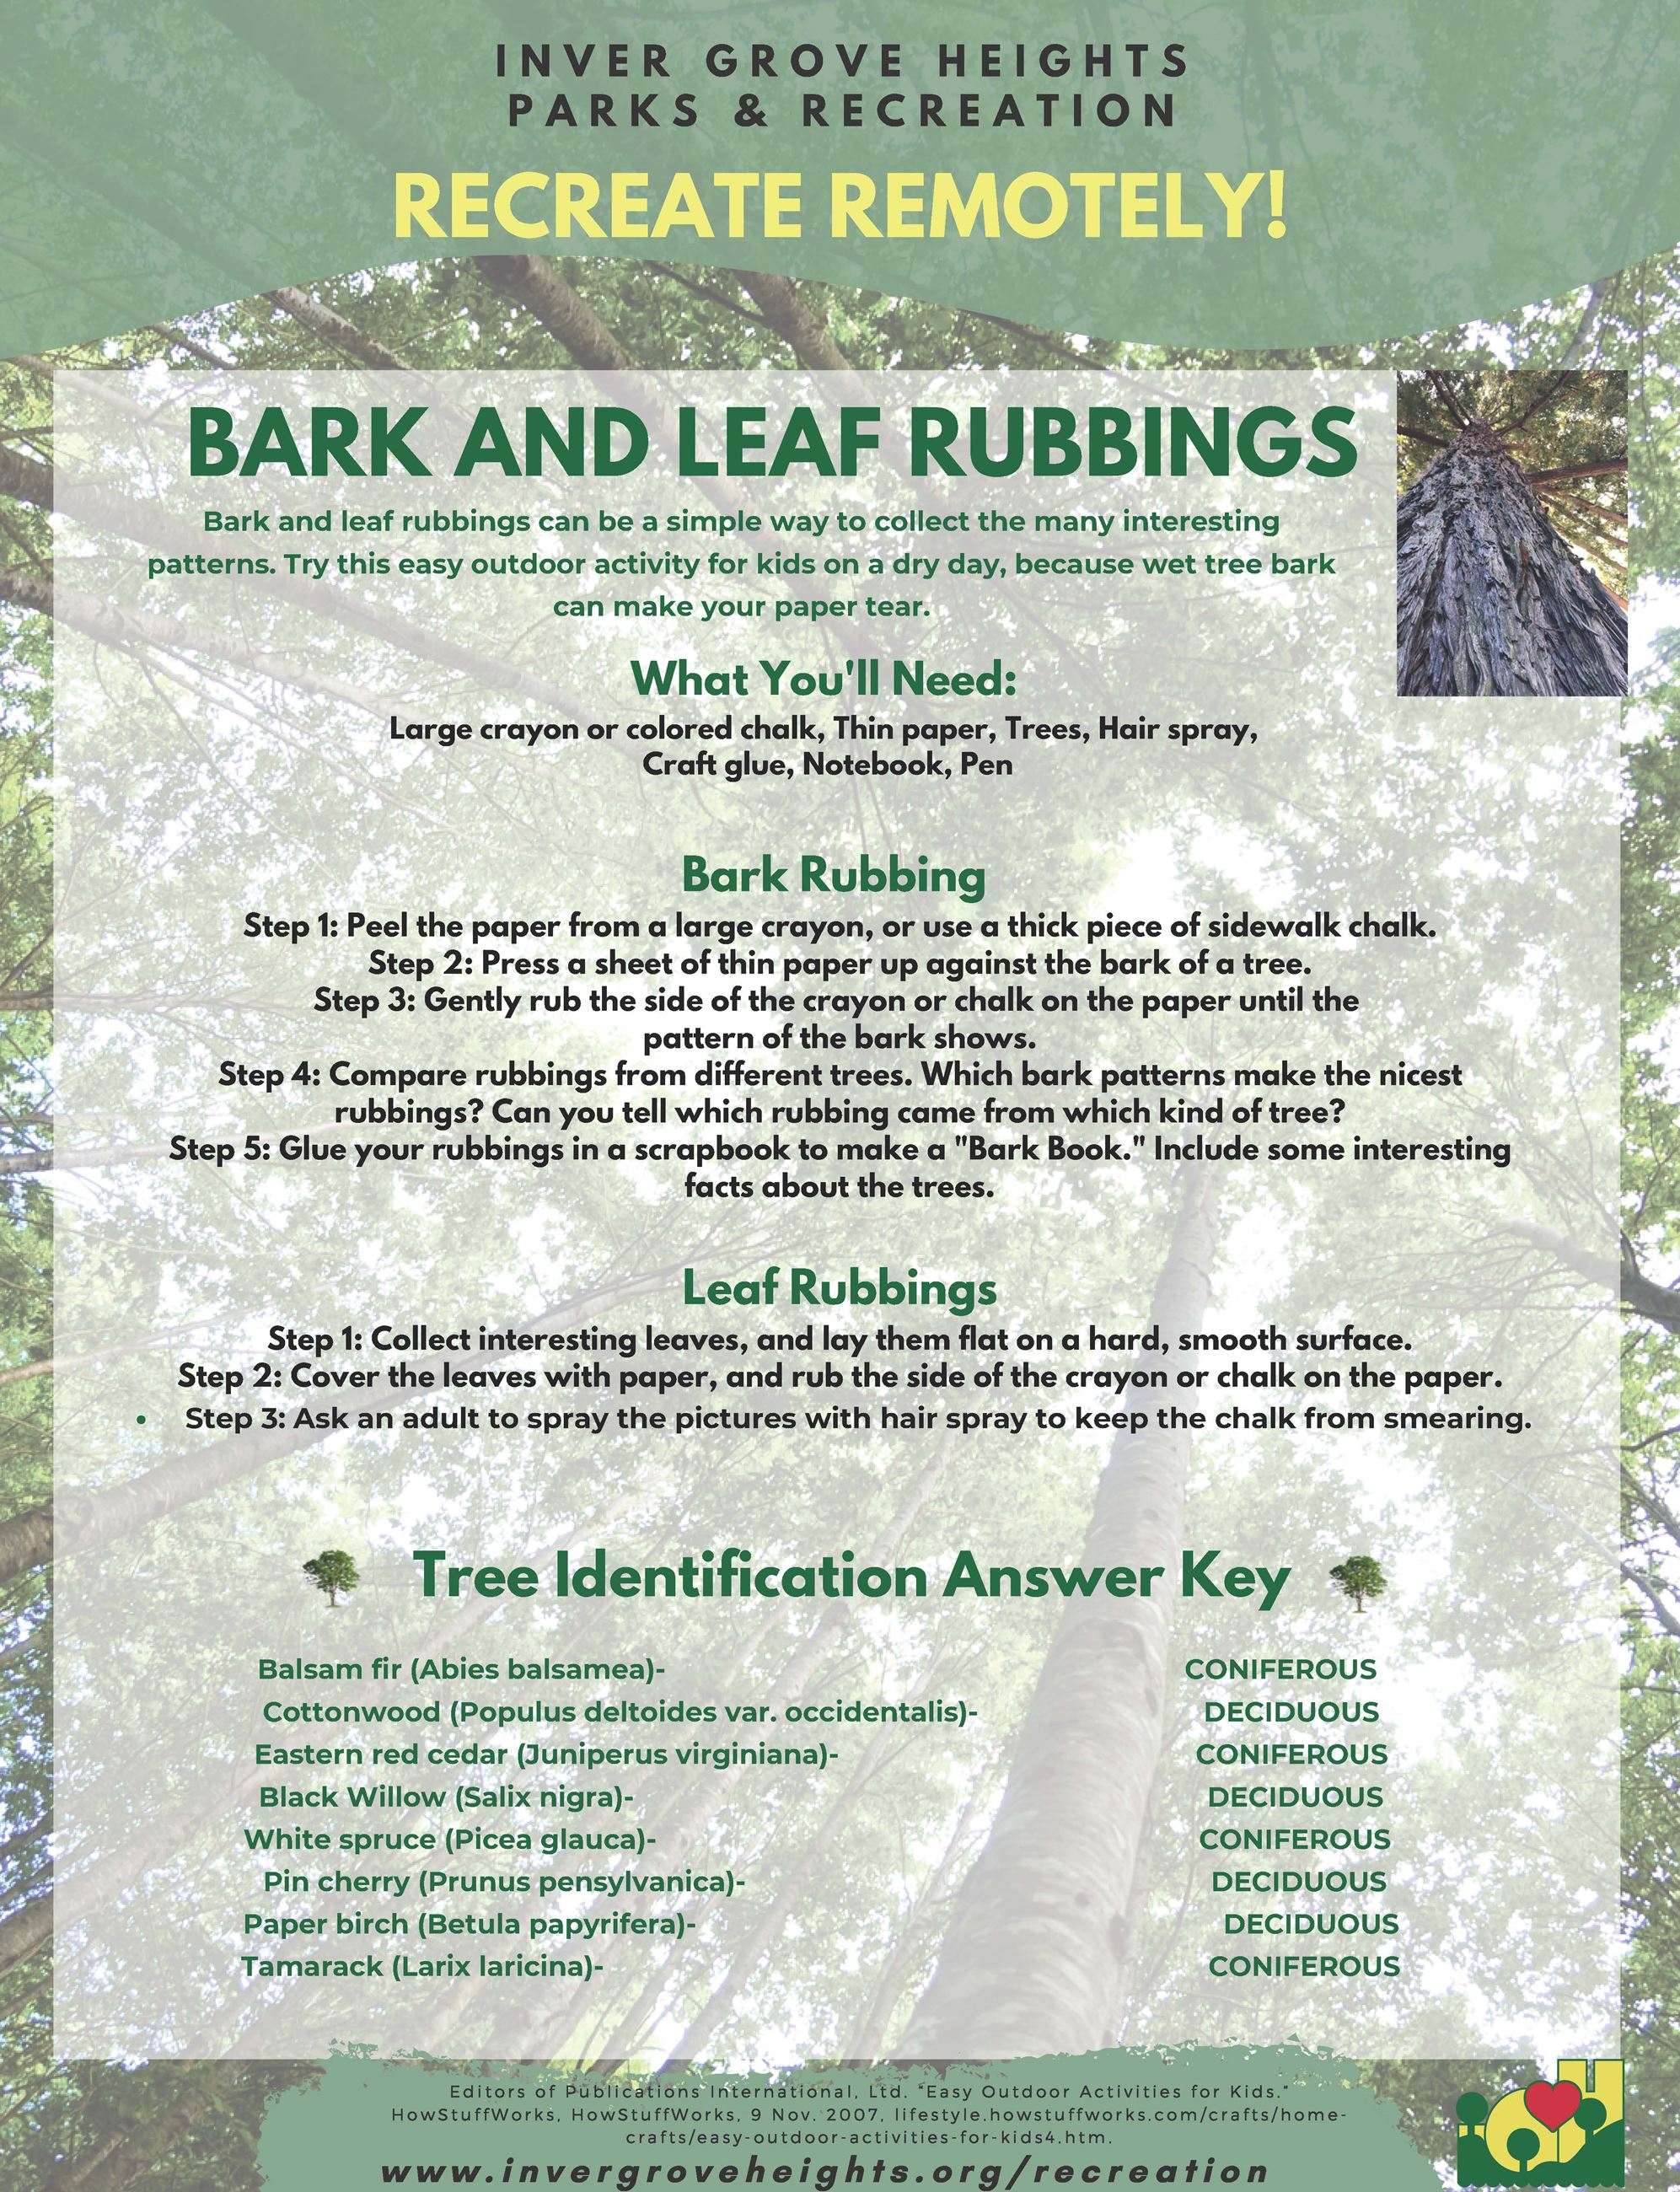 ArborDay Bark and Leaf Rubbings